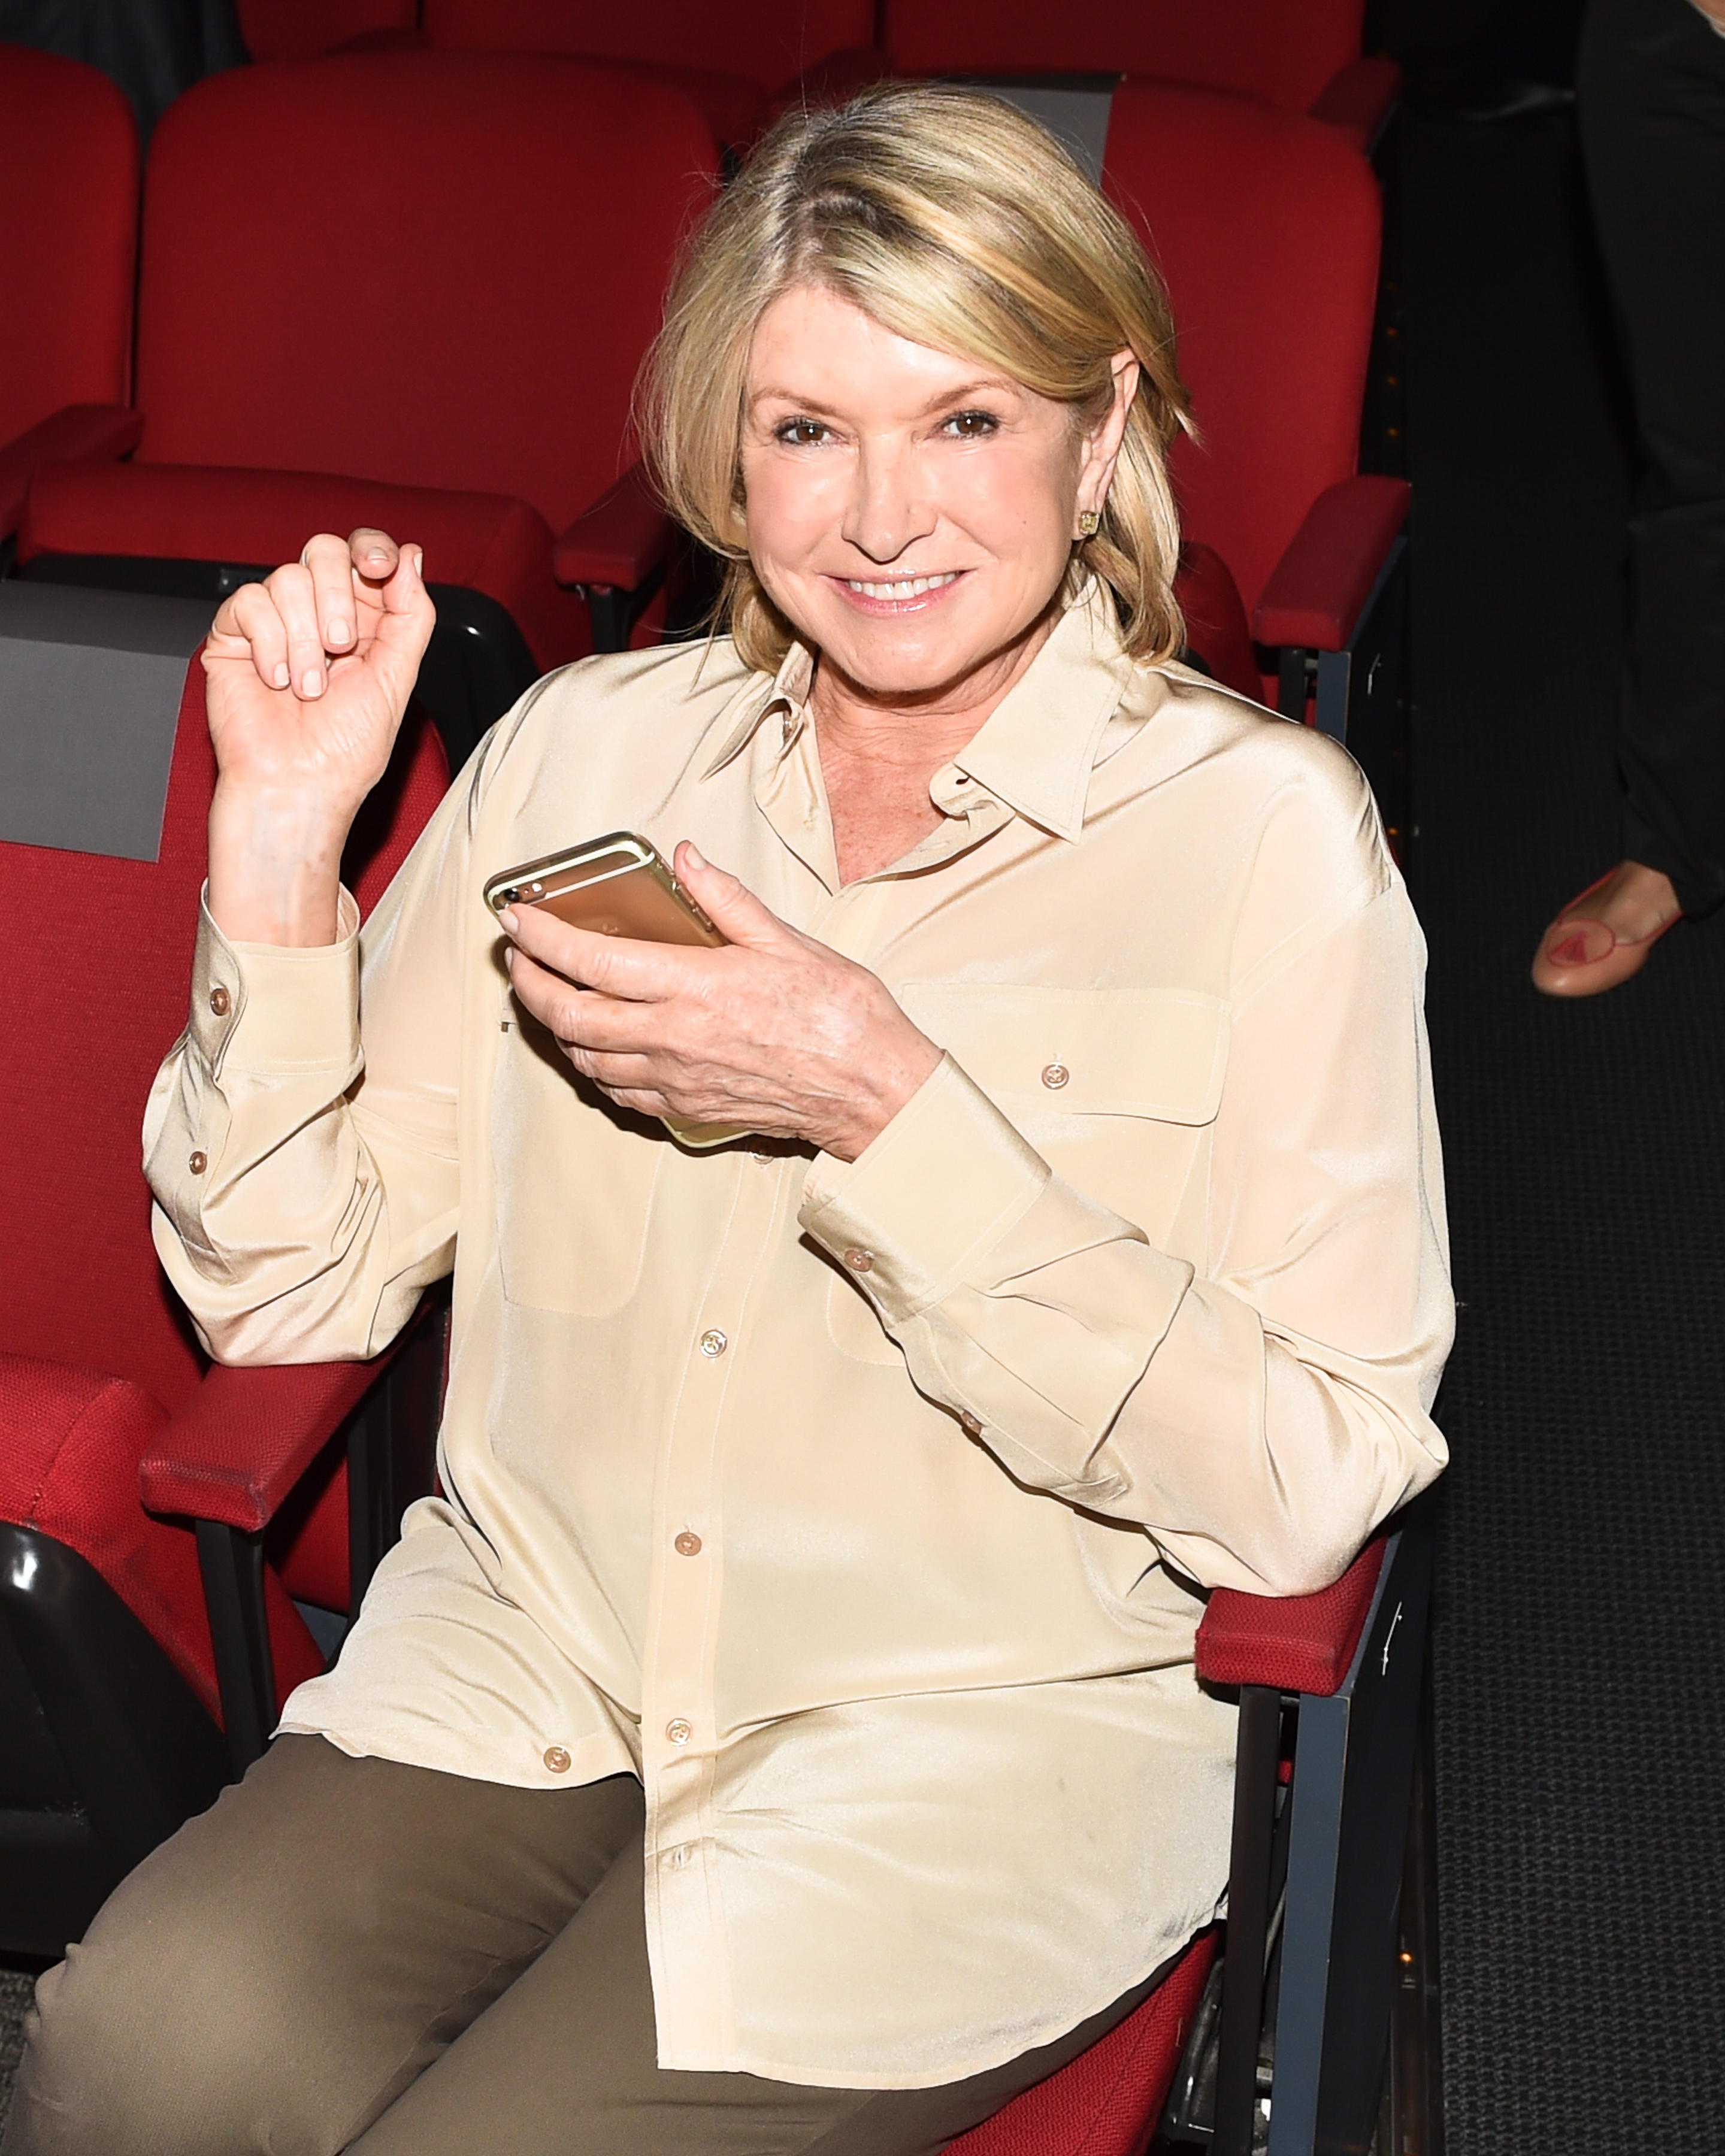 Martha Stewart attends an event honoring Jean Nouvel at the Museum of Modern Art in New York City on May 11, 2015.